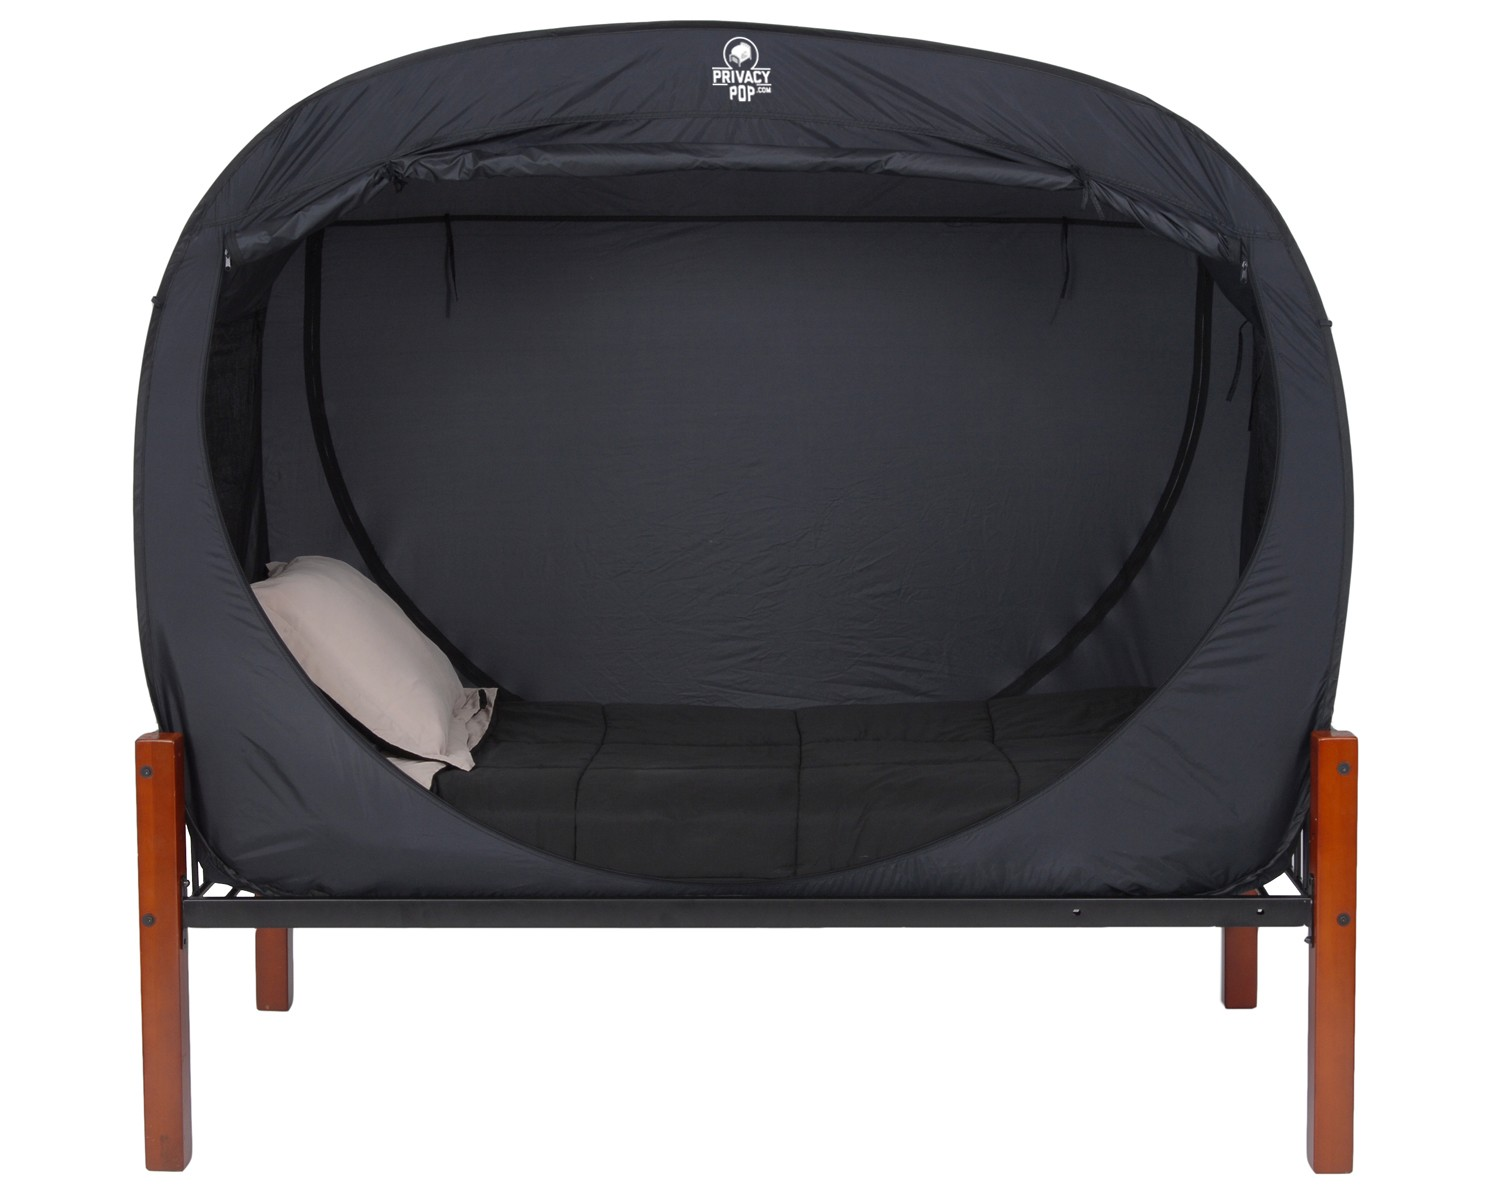 sc 1 st  CoolThings.com & Privacy Pop Is A Tent For Your Bed